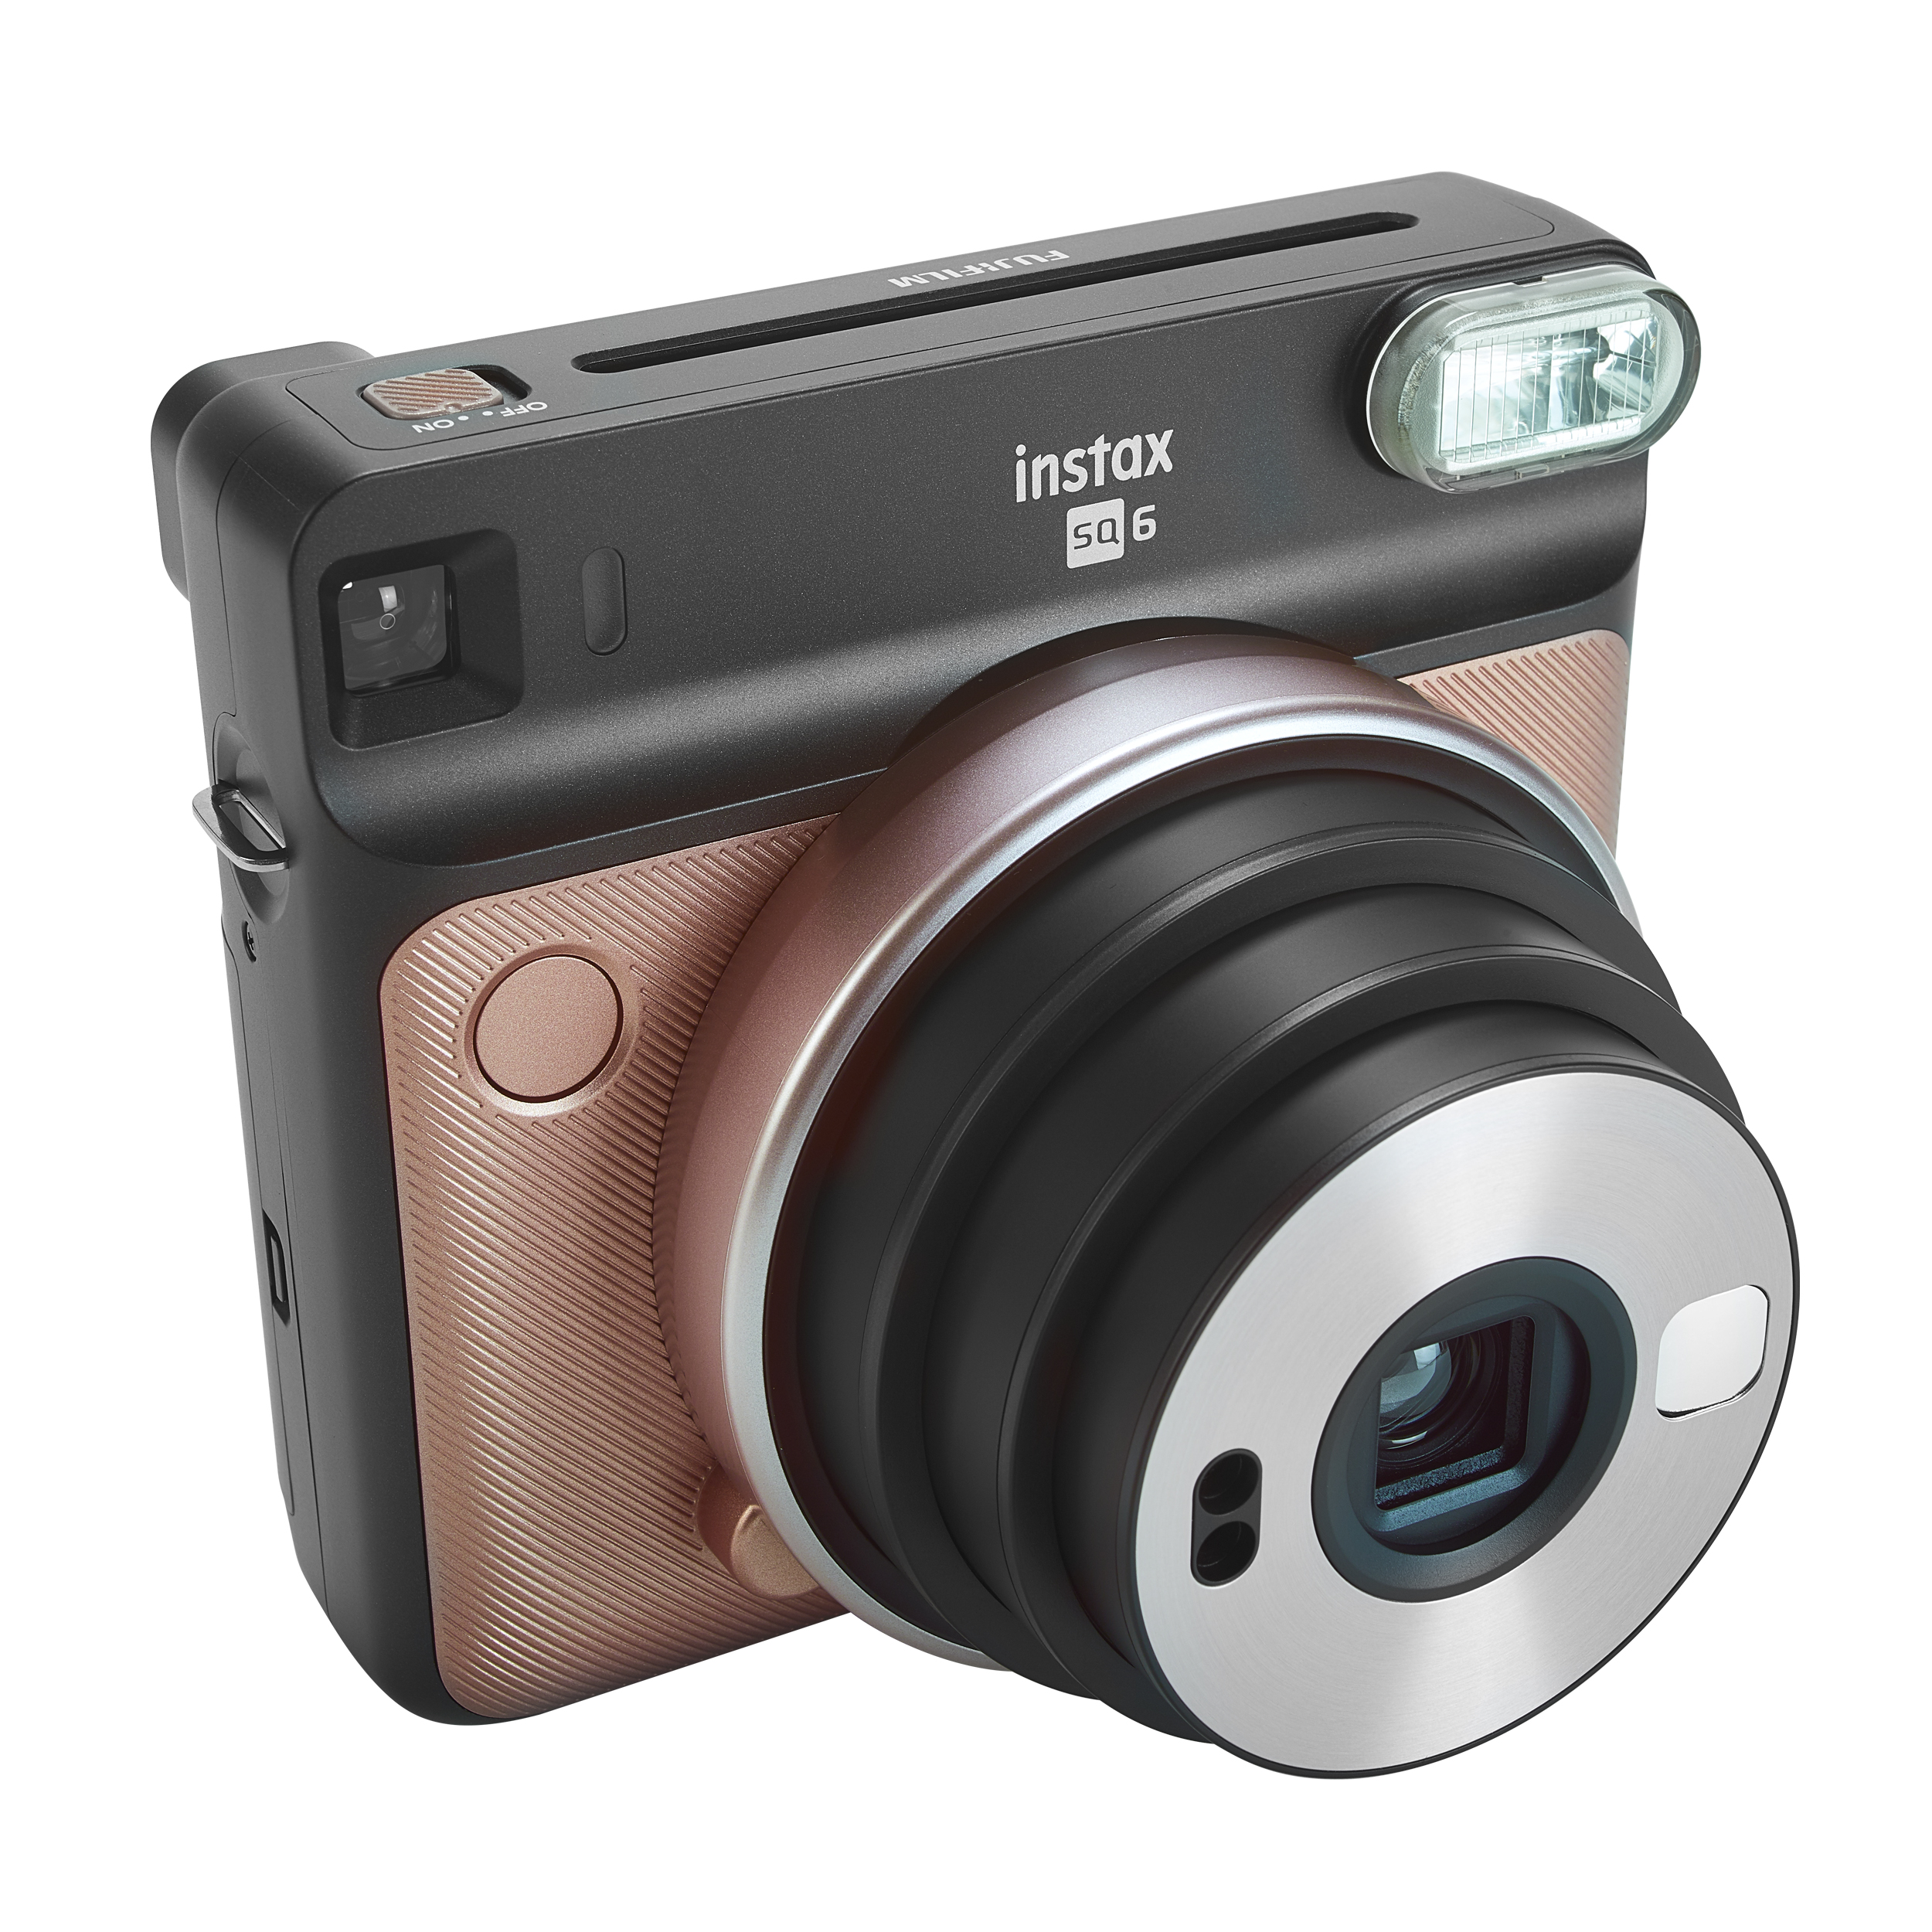 Fujifilm Instax Camera  - Auto-exposure control - Selfie mirror and selfie mode - Includes: package of 10 films, colour filters, shoulder strap and batteries